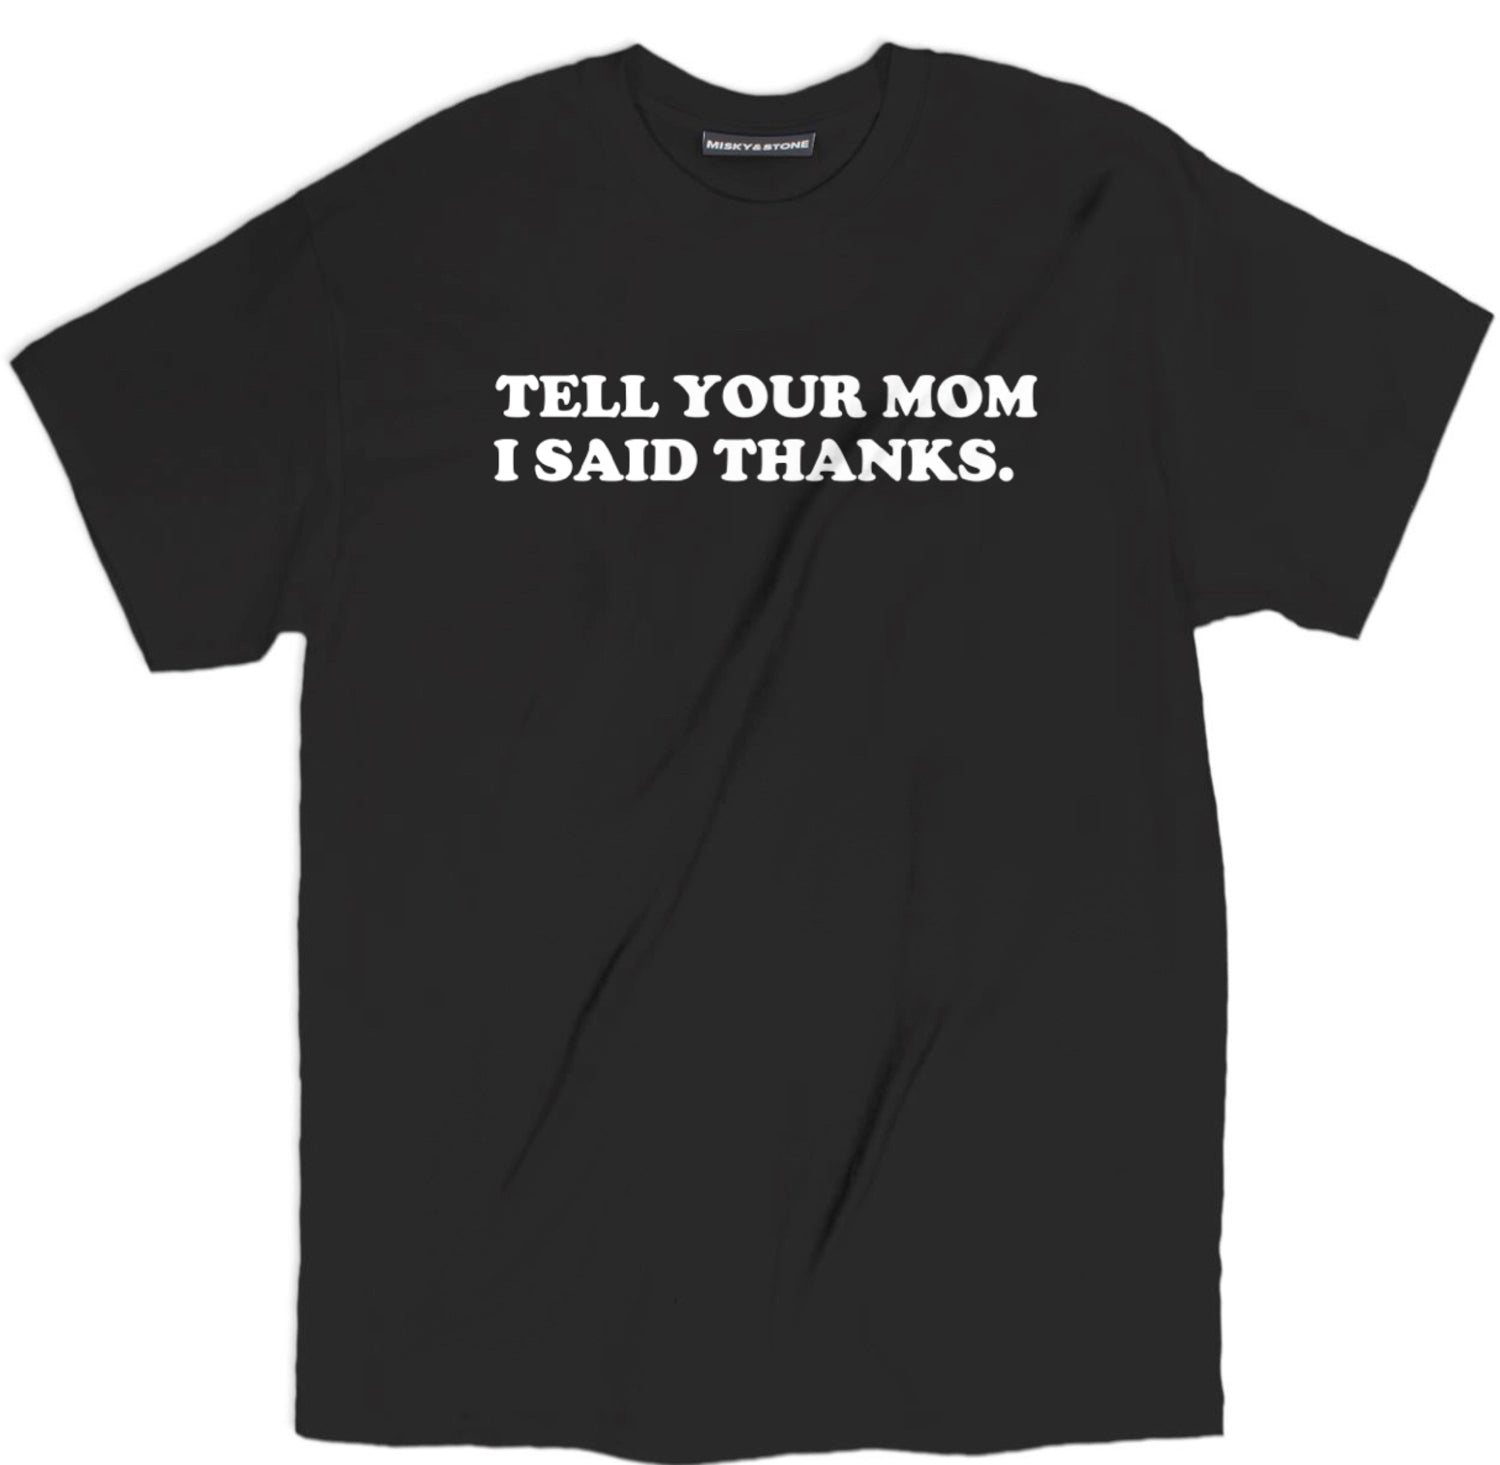 tell your mom i said thanks t shirt, funny mom joke t shirt, mom funny t shirts, funny graphic tees, awesome shirts, hilarious shirts, cool t shirts, funny shirts, funny tee shirts, novelty t shirts, awesome t shirts, cool tee shirts, funny tees, crazy t shirts, funny graphic tees, funny tshirt sayings, pun t shirts, awesome shirts, funny tshirt quotes,  tshirt sayings, pun t shirts, awesome shirts